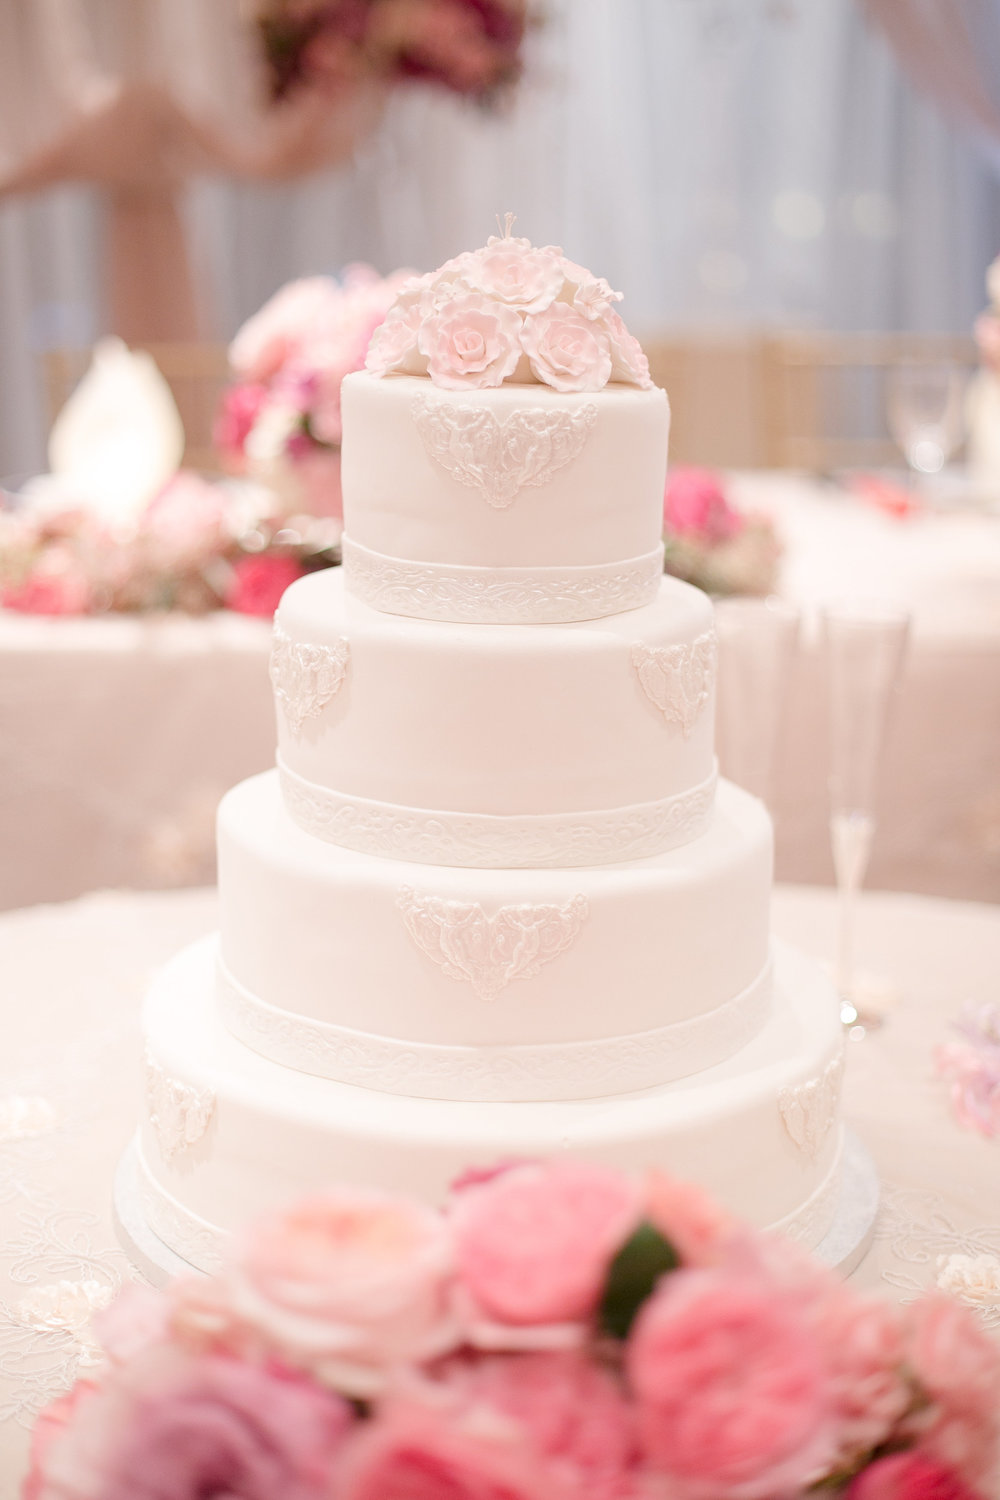 Simple and elegant pink wedding cake